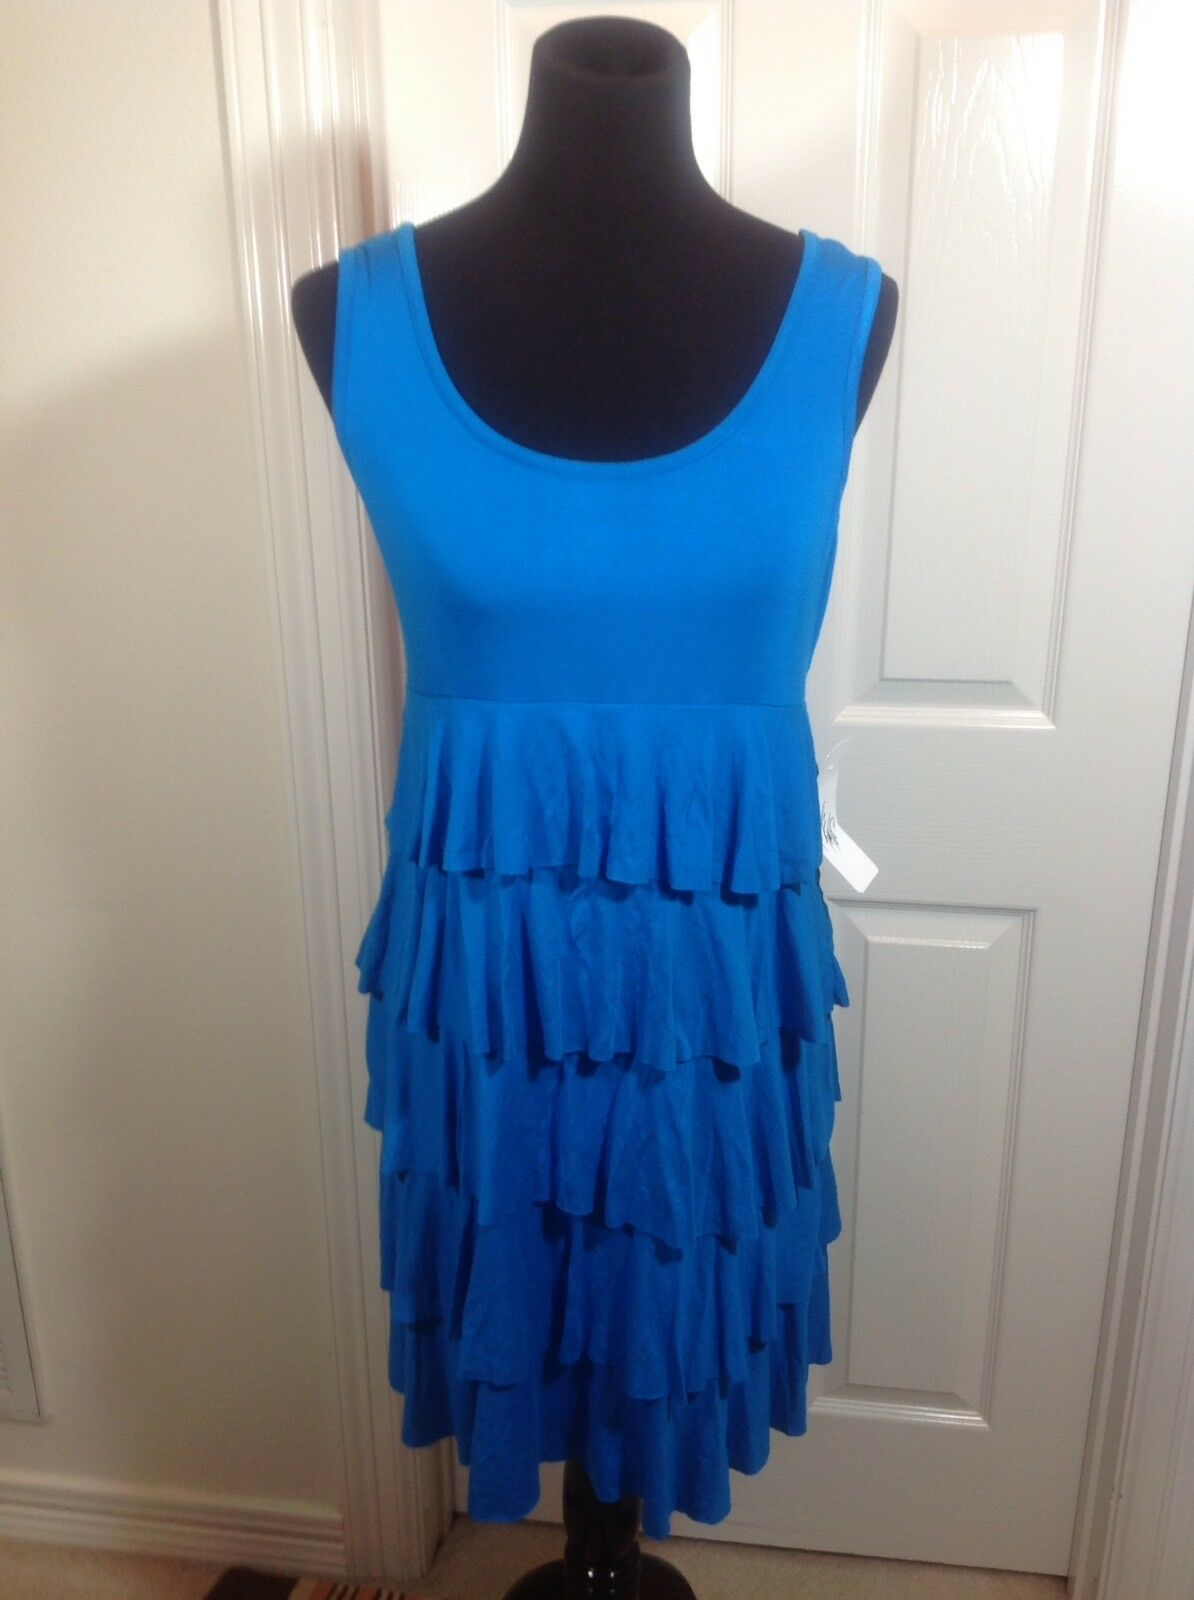 SPENSE Size Large Cerulean (Turquoise) Tiered Sleveless Knit Dress NWT